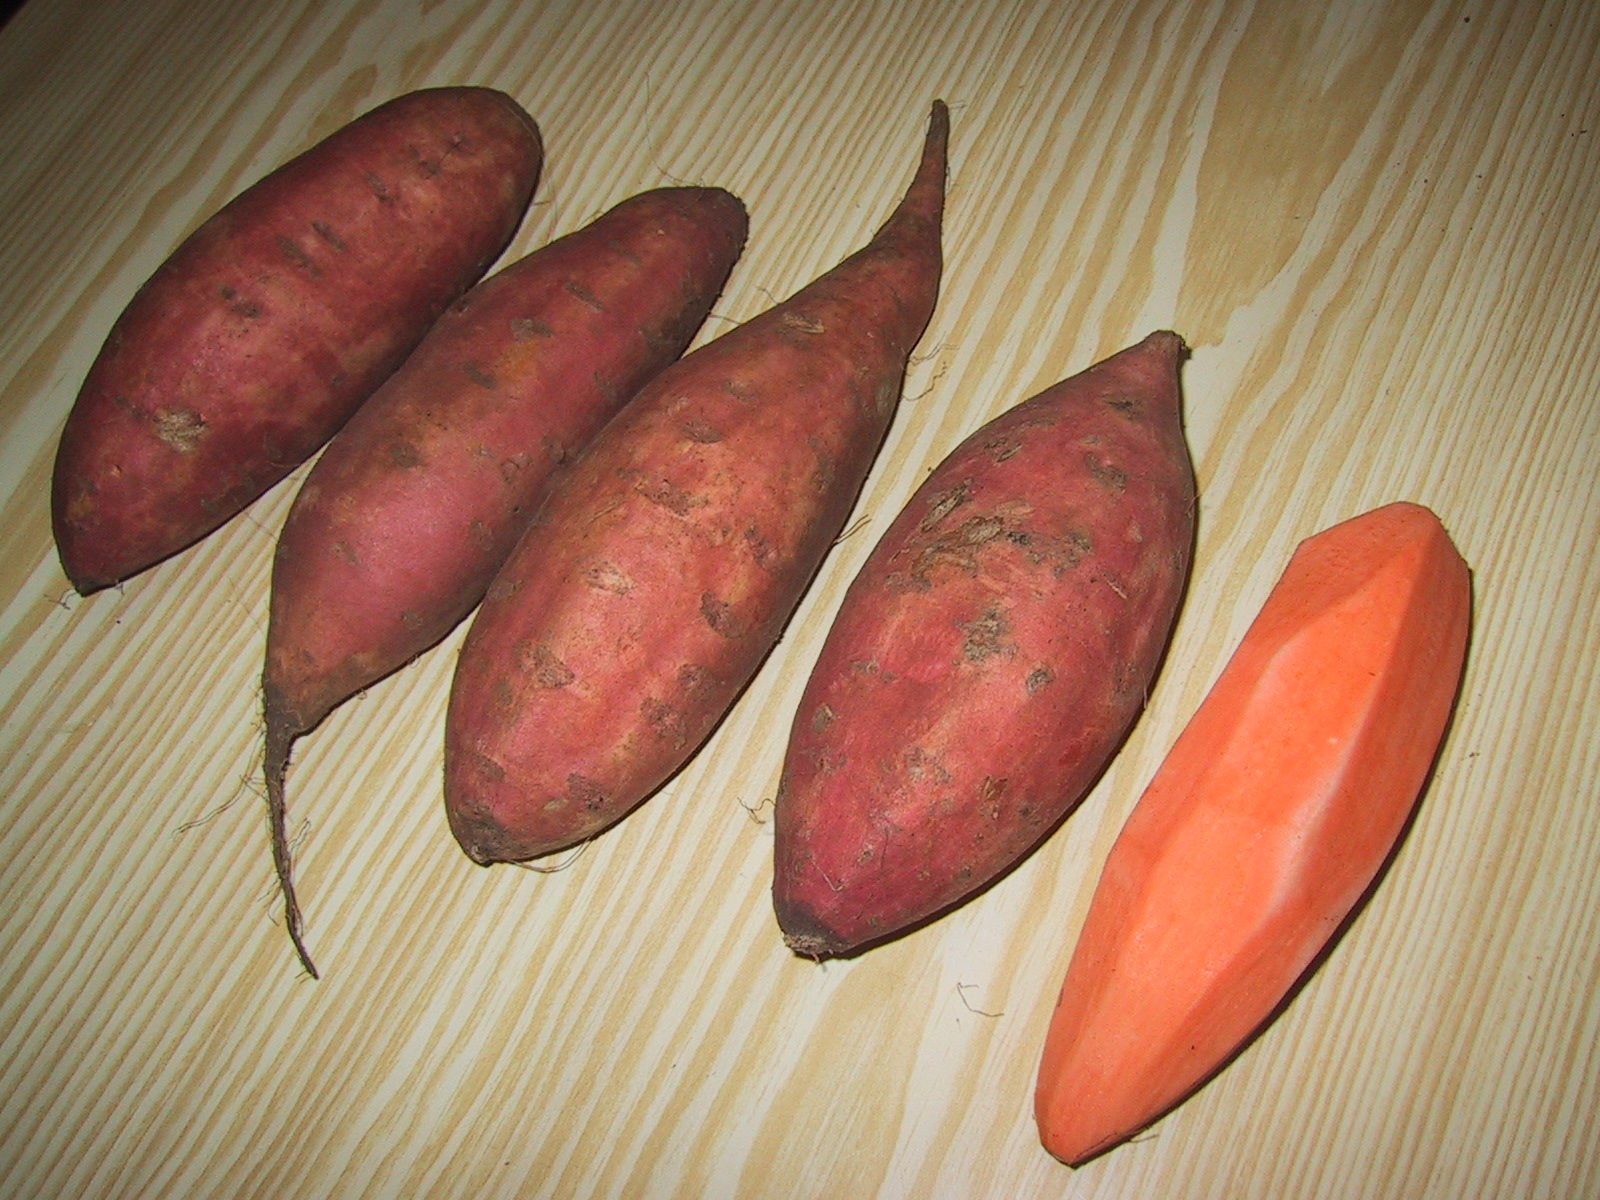 File:Sweet potatoes.JPG - Wikimedia Commons